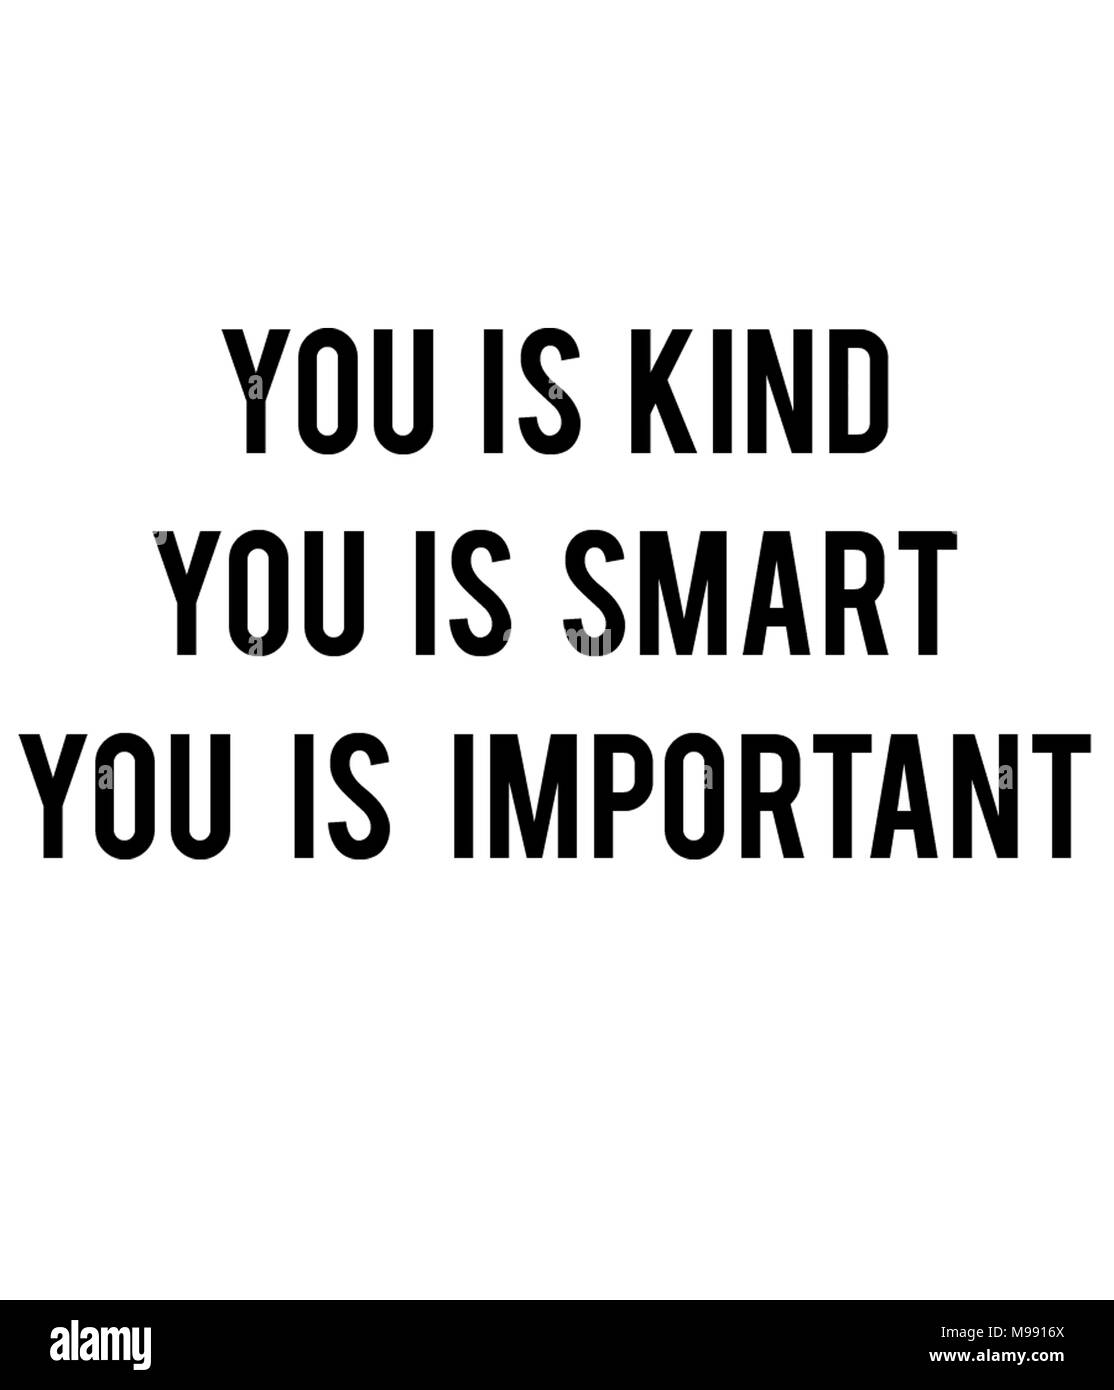 You Is Kind You Is Smart You Is Important Stock Photo 177834130 Alamy